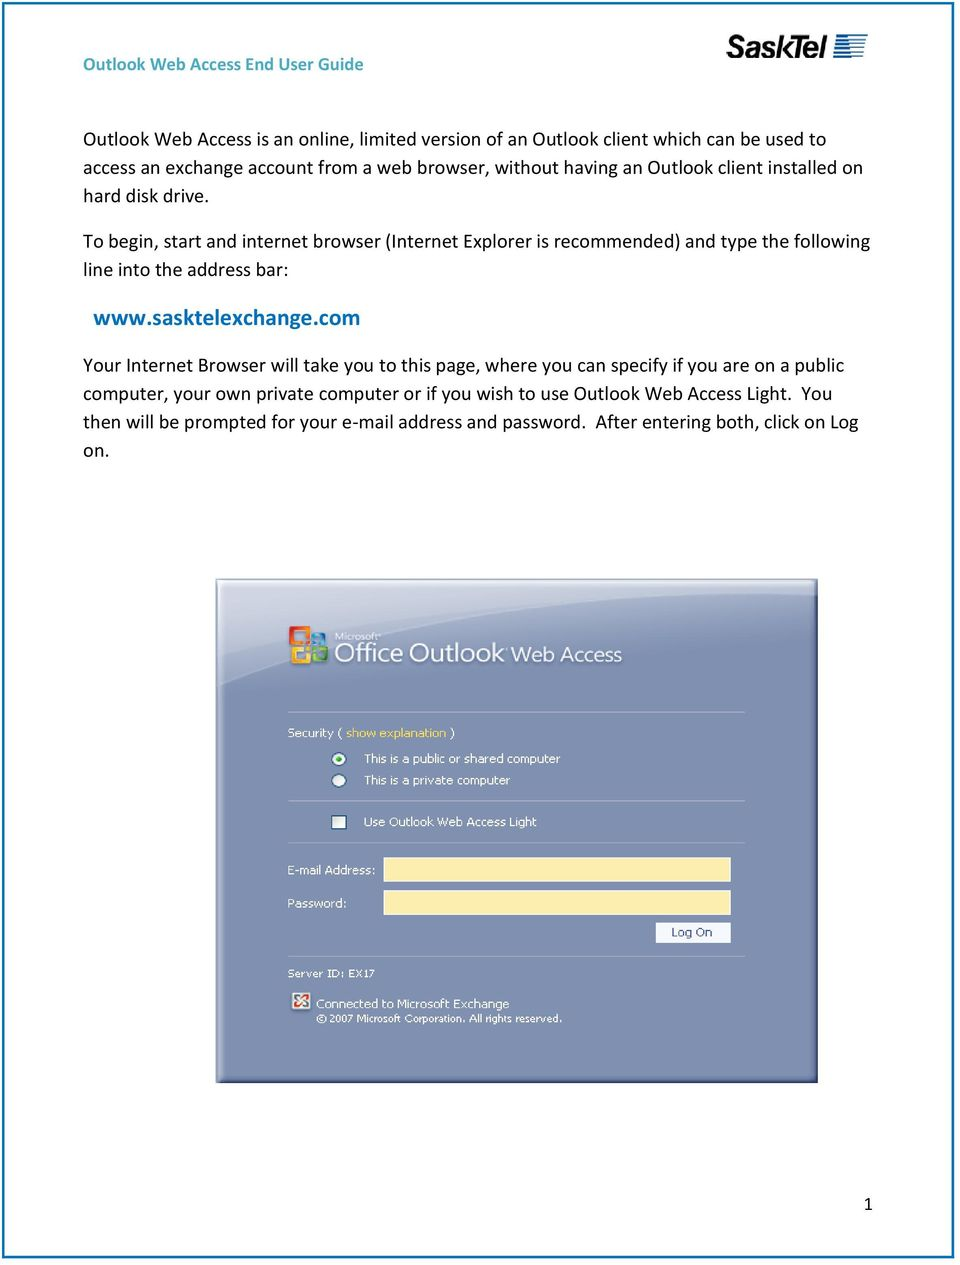 Outlook Web Access End User Guide Pdf